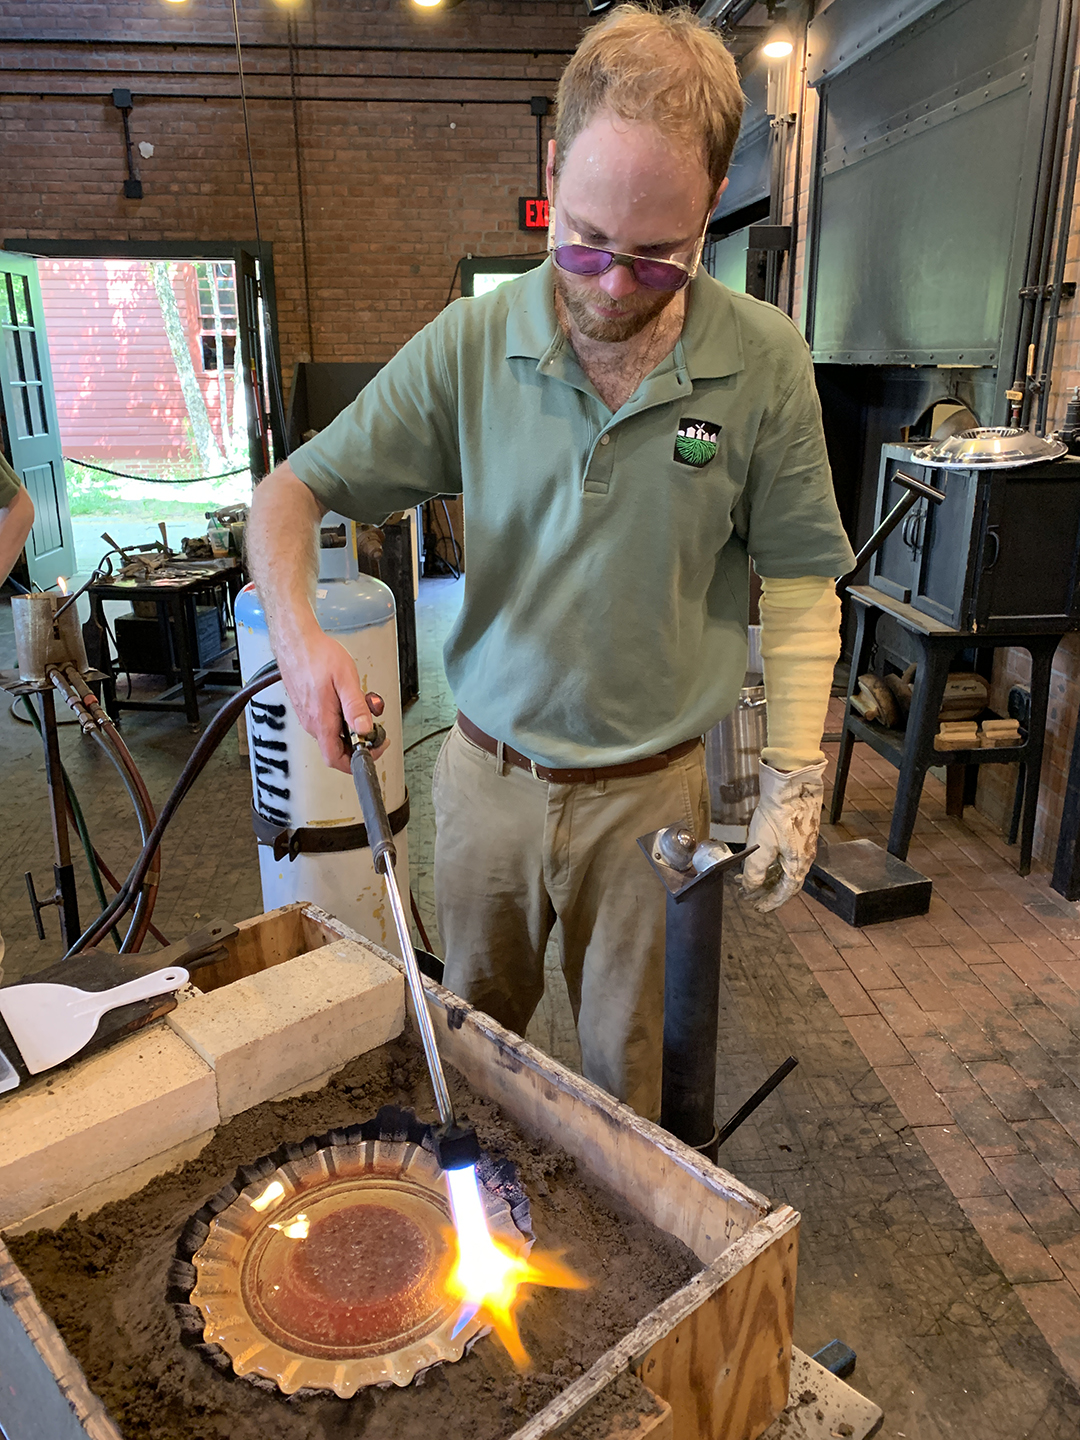 Andy Koupal works in the Henry Ford Museum's hot shop